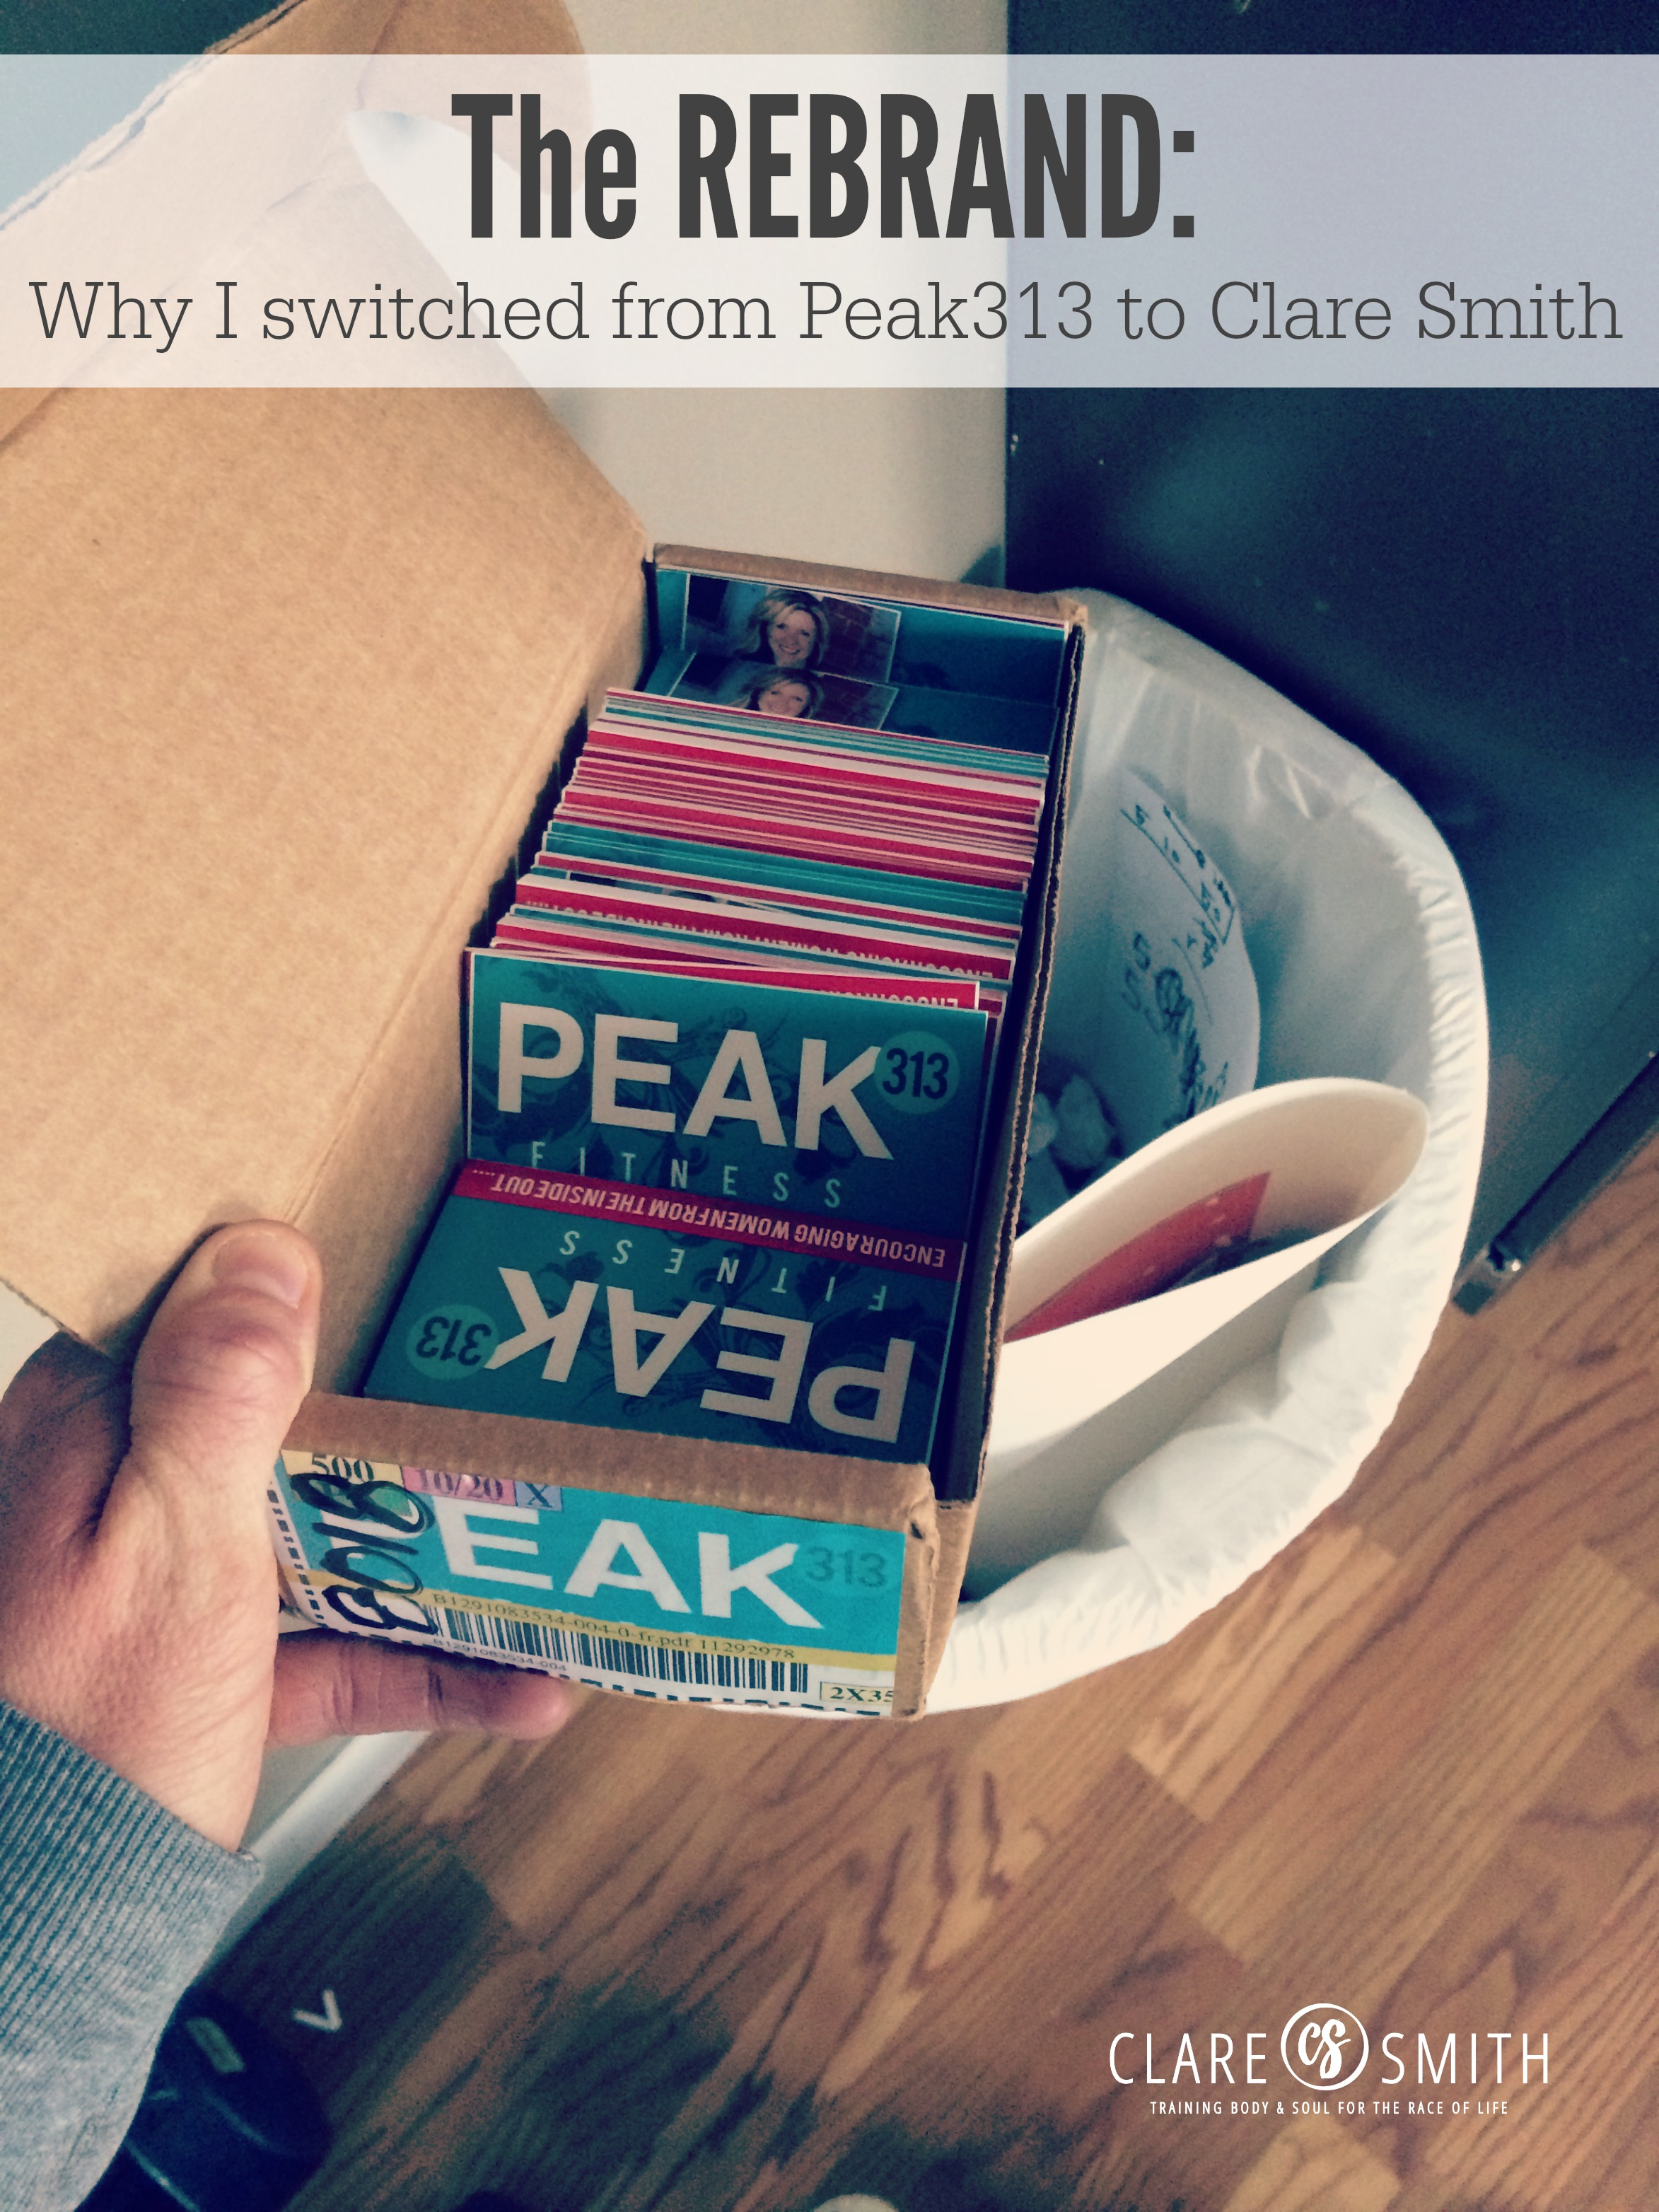 The REBRAND: Why I switched from Peak313 to Clare Smith : claresmith.me